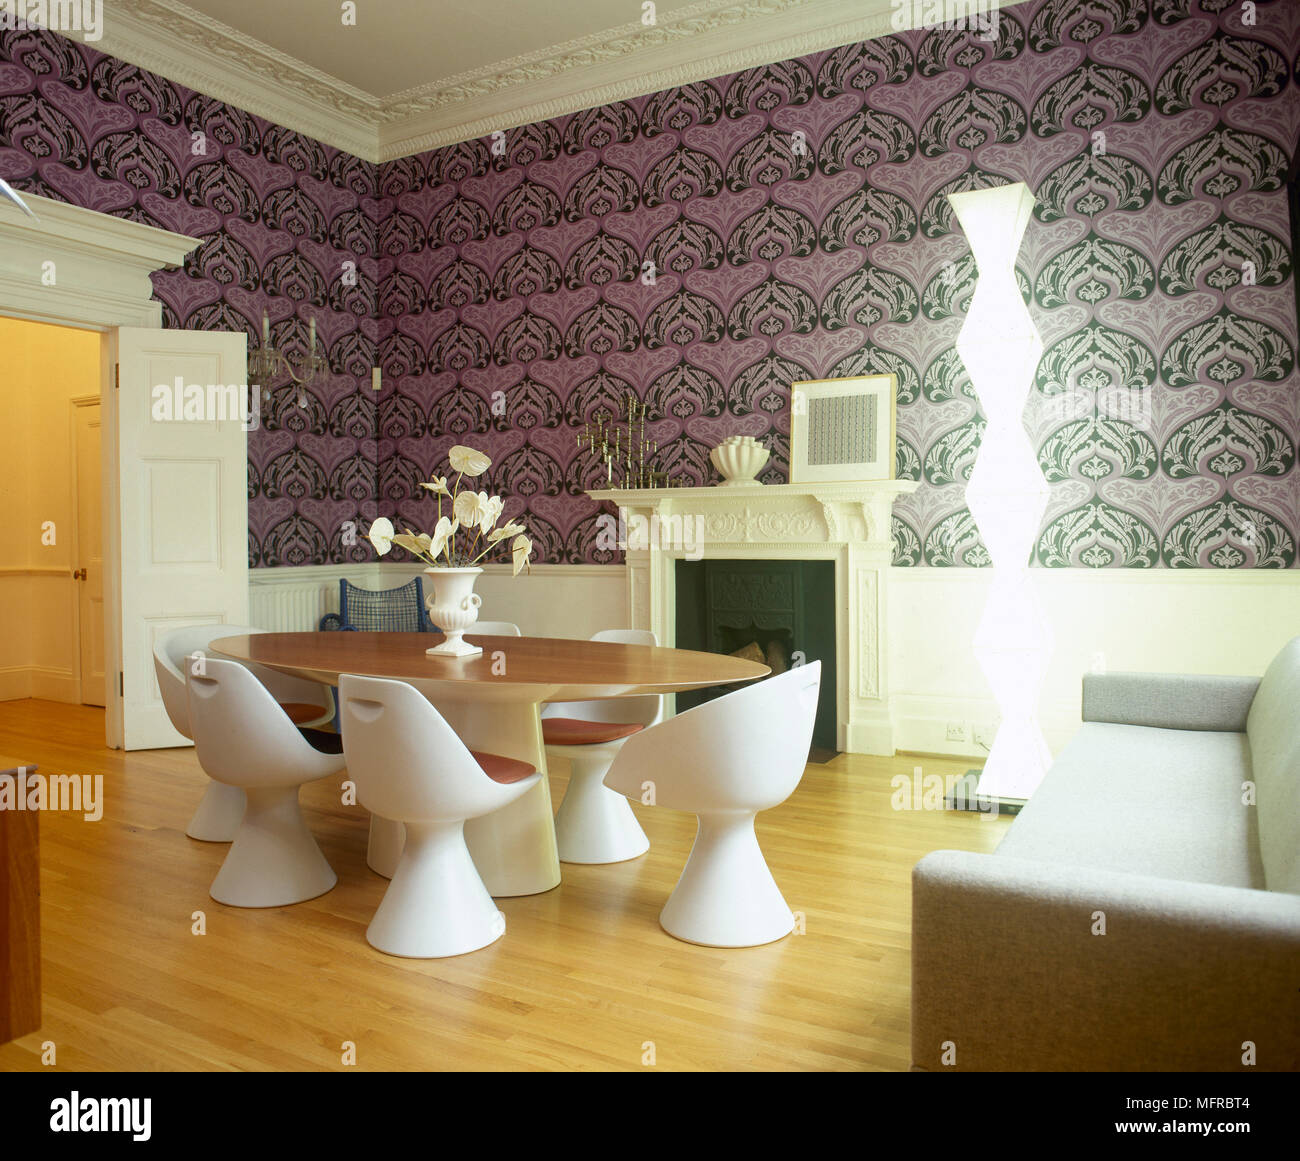 Modern Dining Room With Geometric Wallpaper Dining Table With Moulded Plastic Chairs Wood Floor And A Lit Sculptural Floor Lamp Stock Photo Alamy